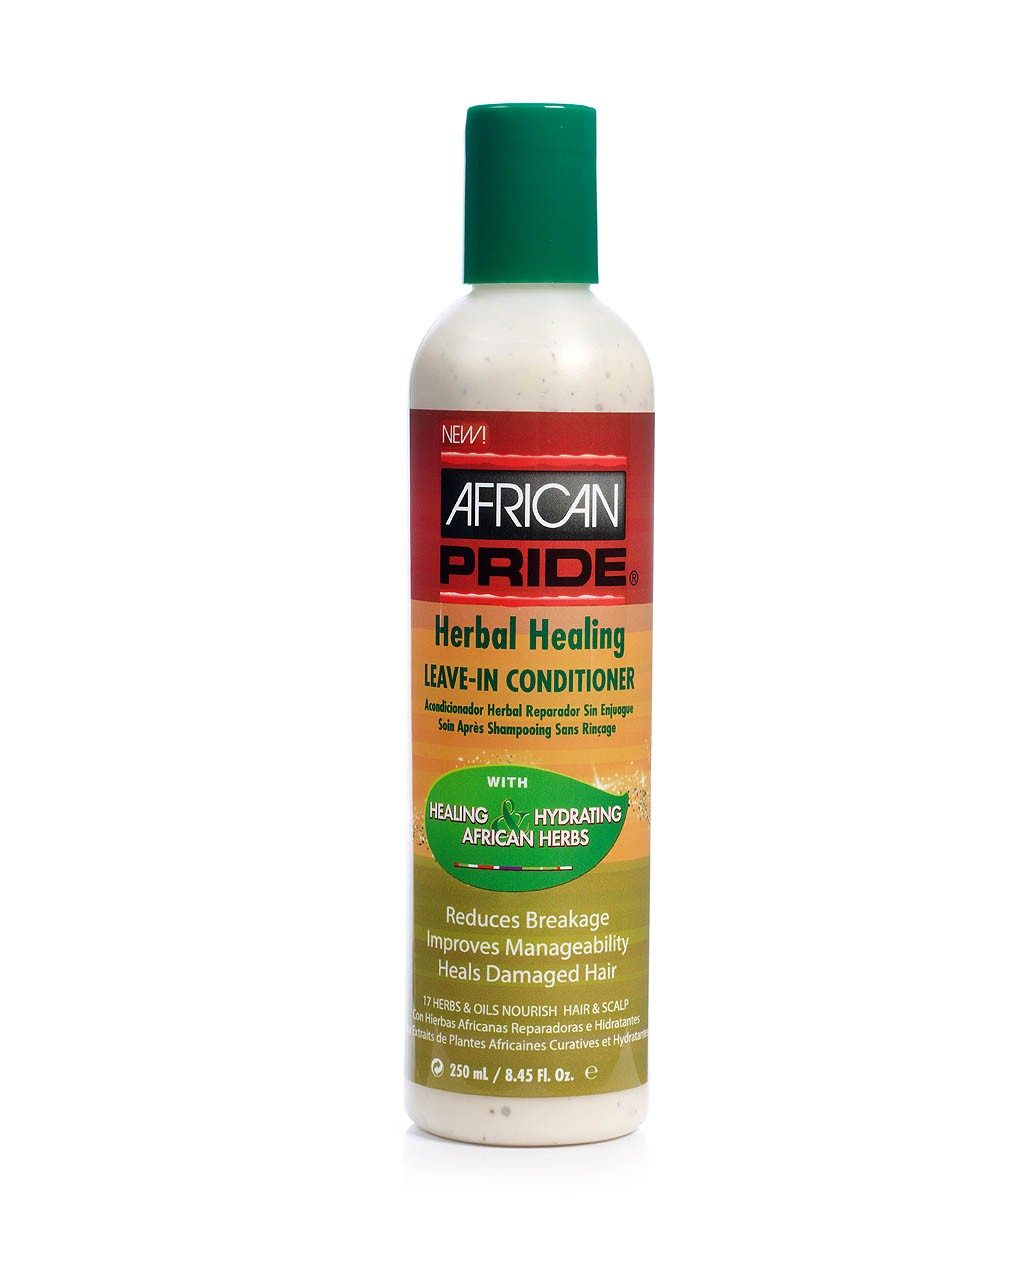 Herbal Healing leave-in Conditioner